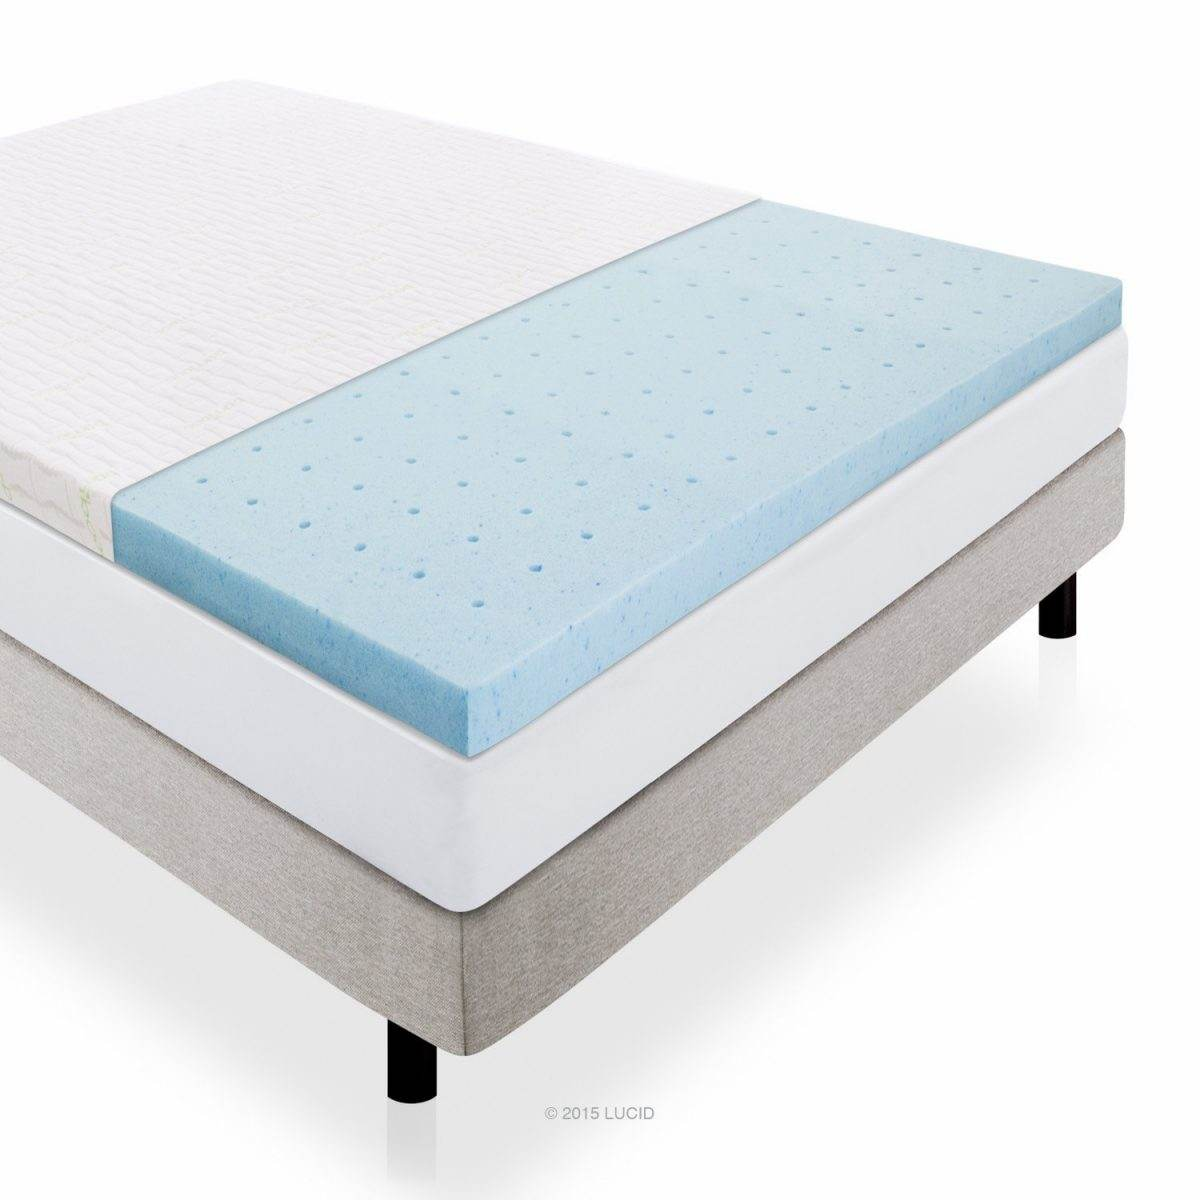 Thin Mattress Topper Lucid Gel Infused Memory Foam Mattress Topper Review